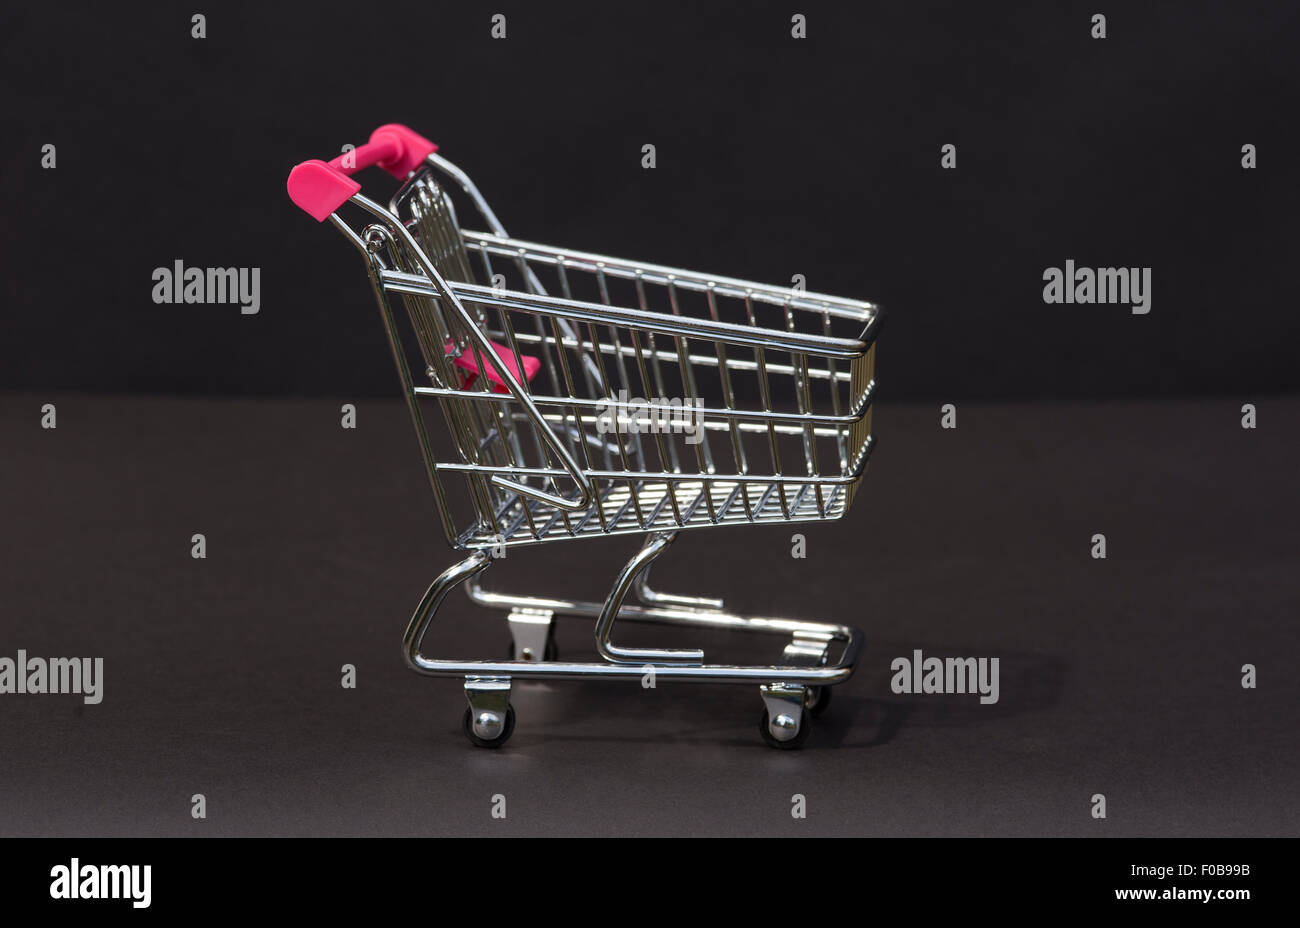 A tiny supermarket trolley in chrome - Stock Image